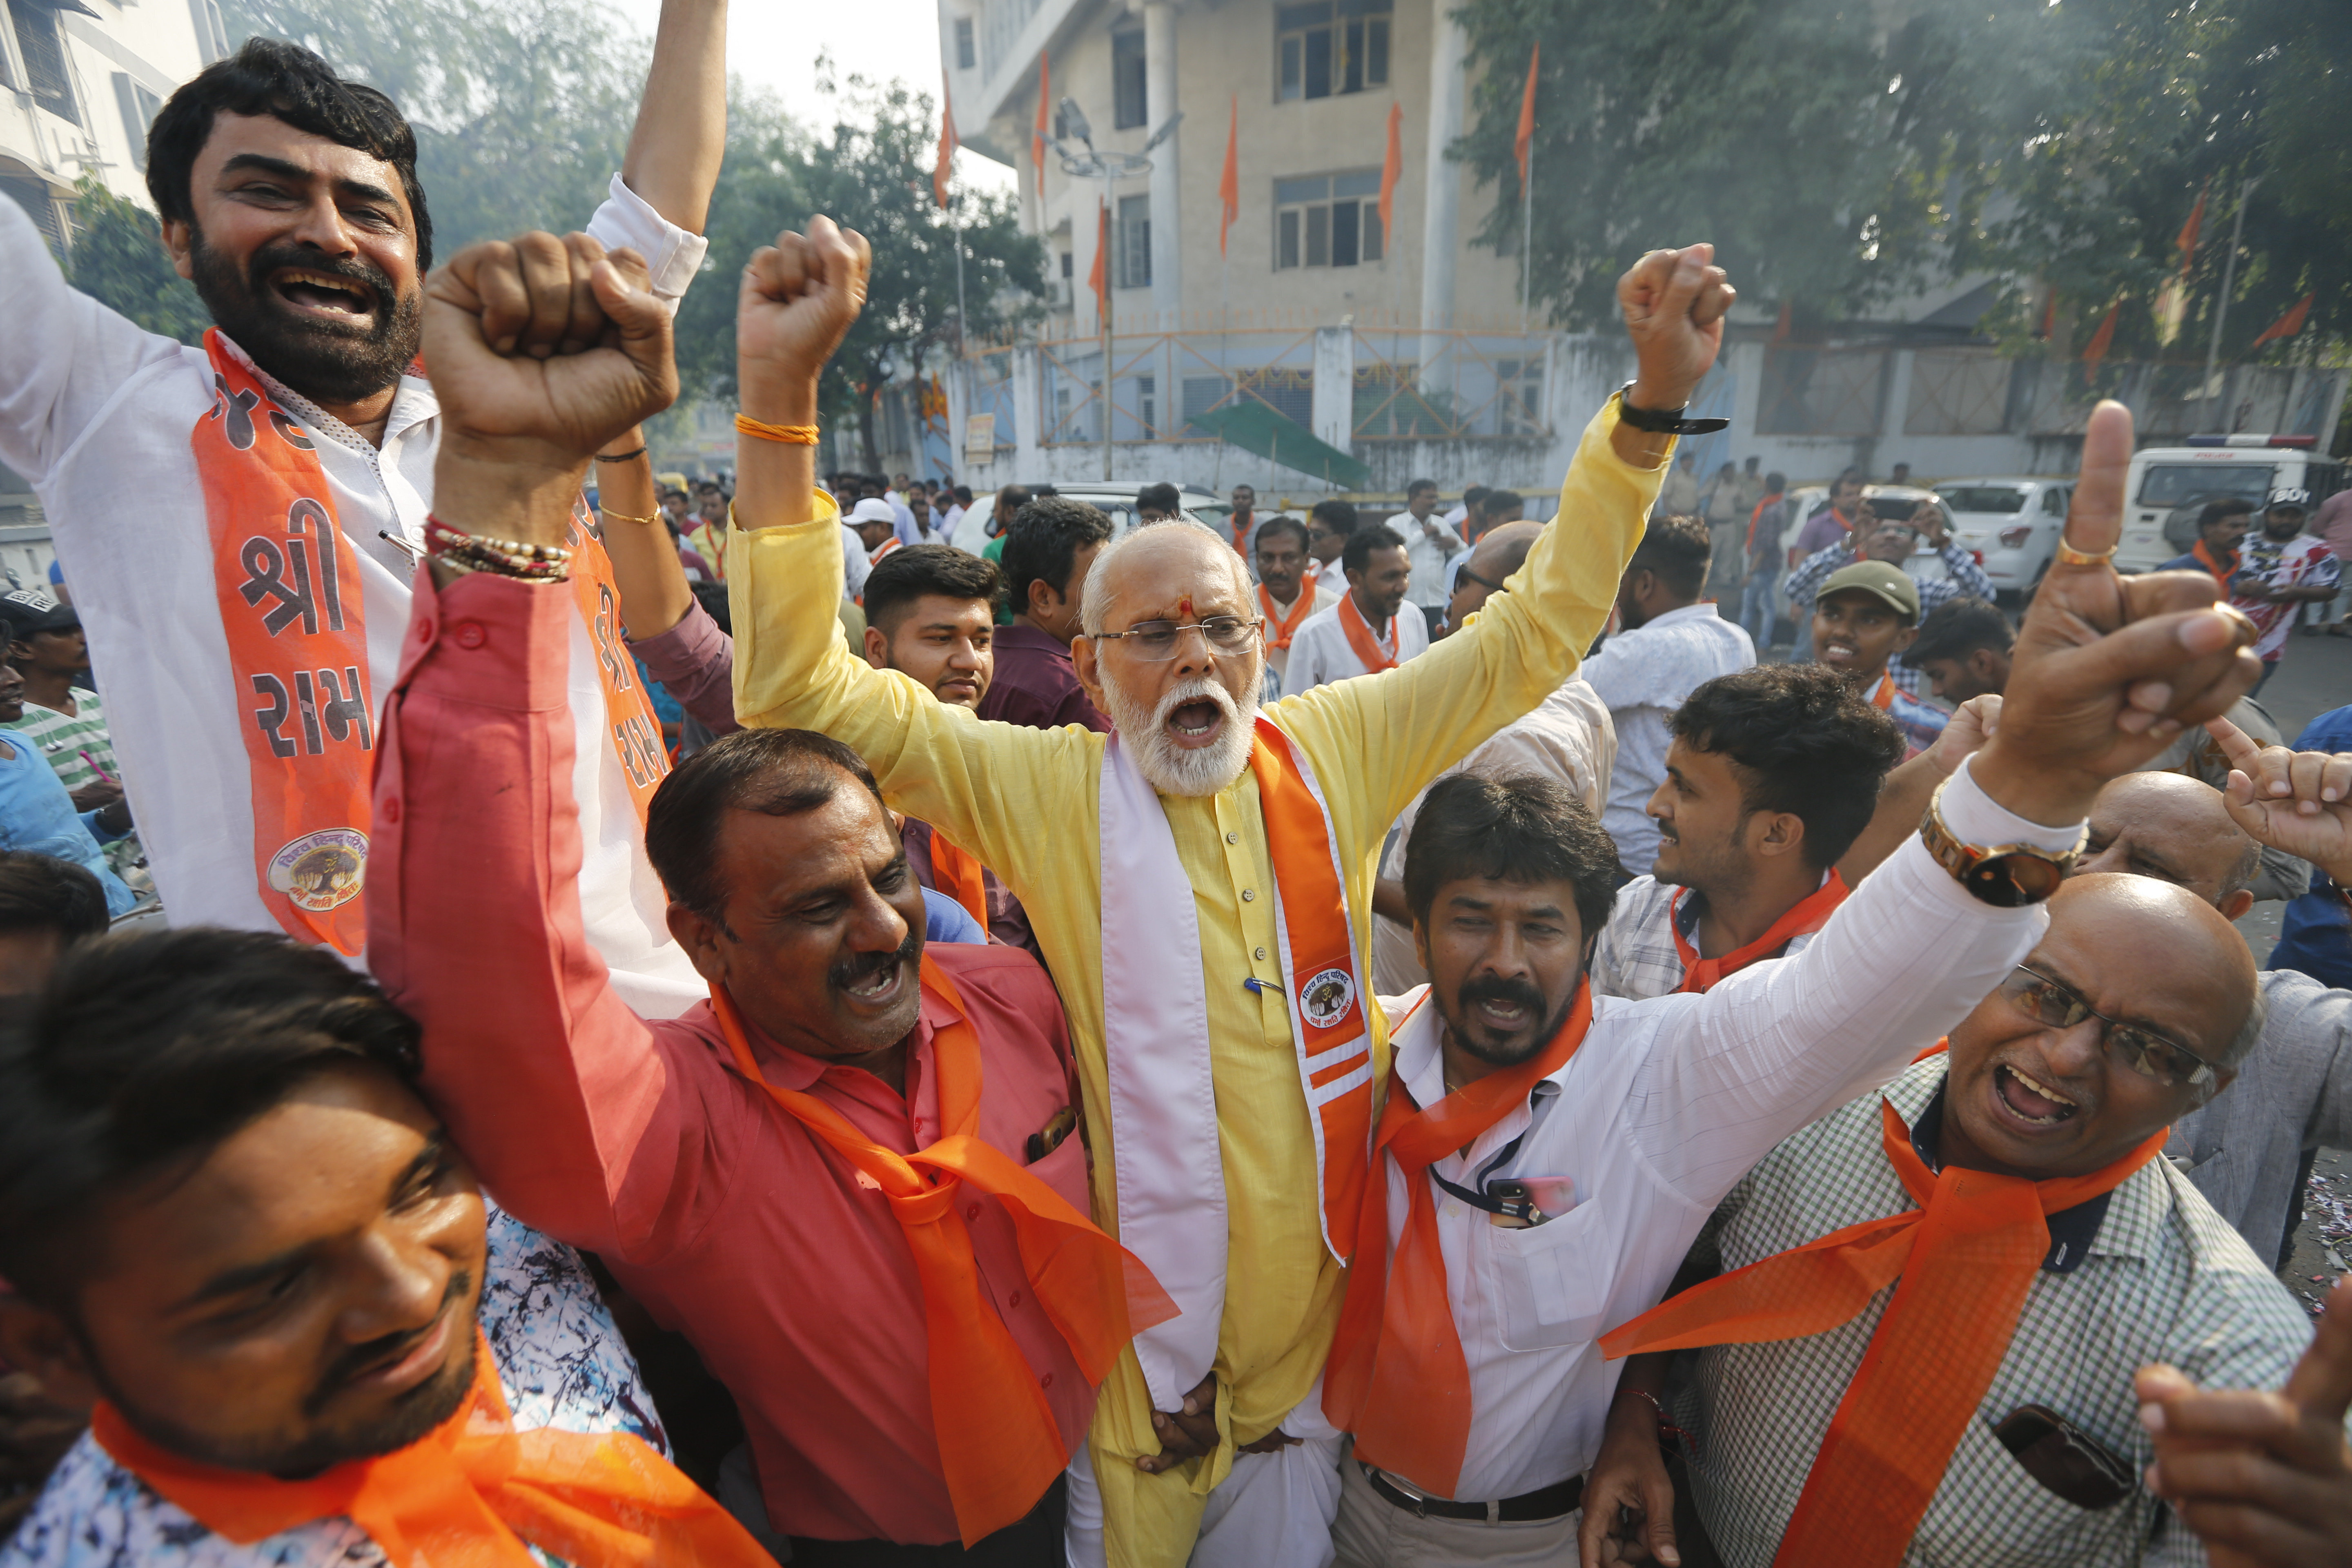 Supporters of Vishwa Hindu Parishad (VHP), or World Hindu Council, celebrate the Supreme Court's verdict outside the VHP office in Ahmadabad, India, Saturday, Nov. 9, 2019.